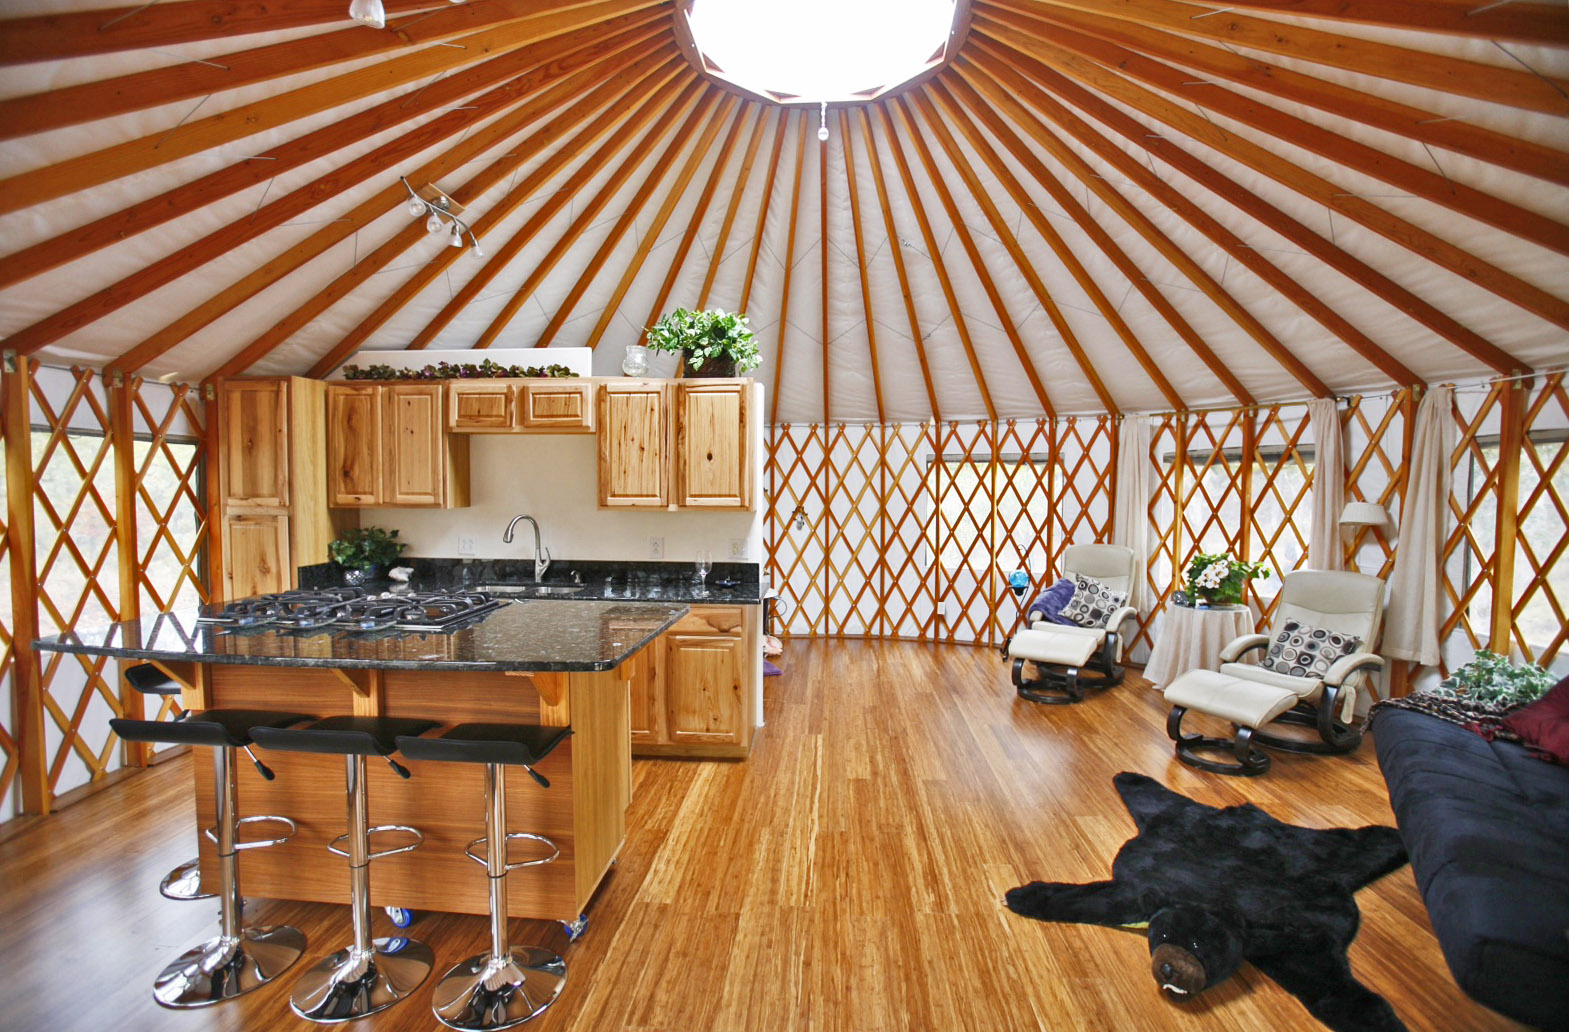 Yurt Home Decorating Ideas   Pacific Yurts Elegant open yurt kitchen